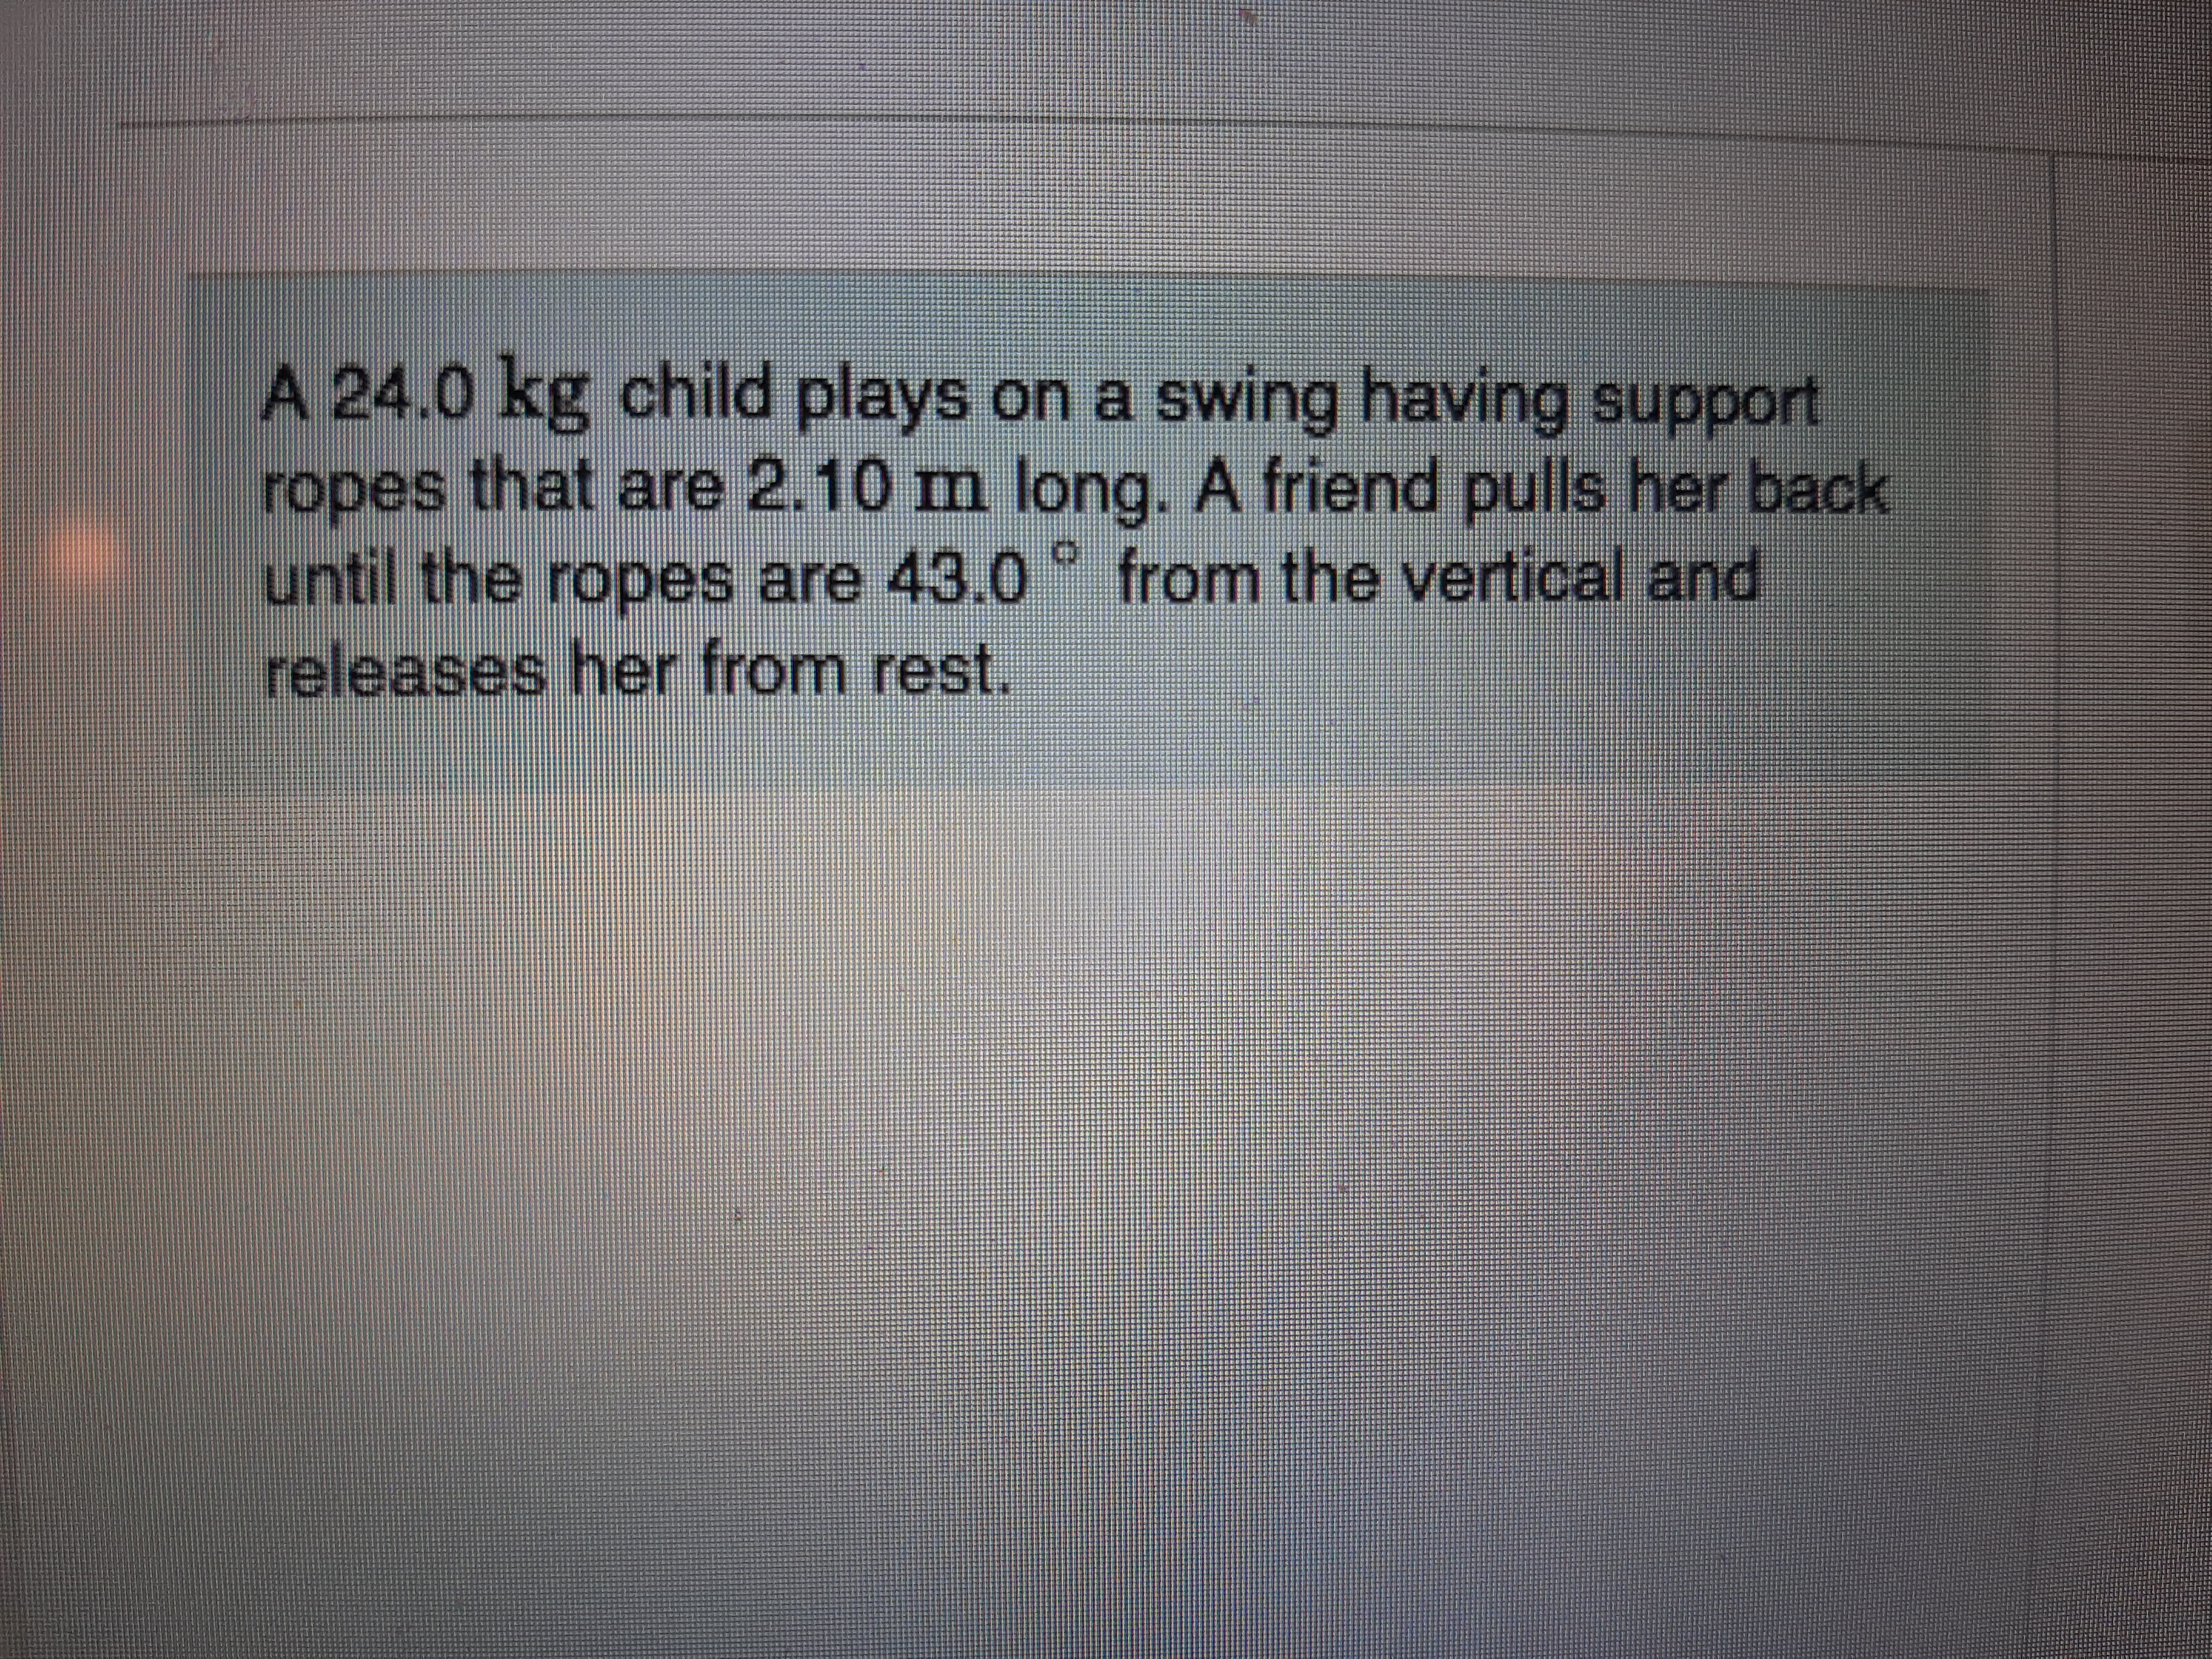 A 24.0 kg child plays on a swing having support ropes that are 2.10 m long. A friend pulls her back until the ropes are 43.0 ° from the vertical and releases her from rest.